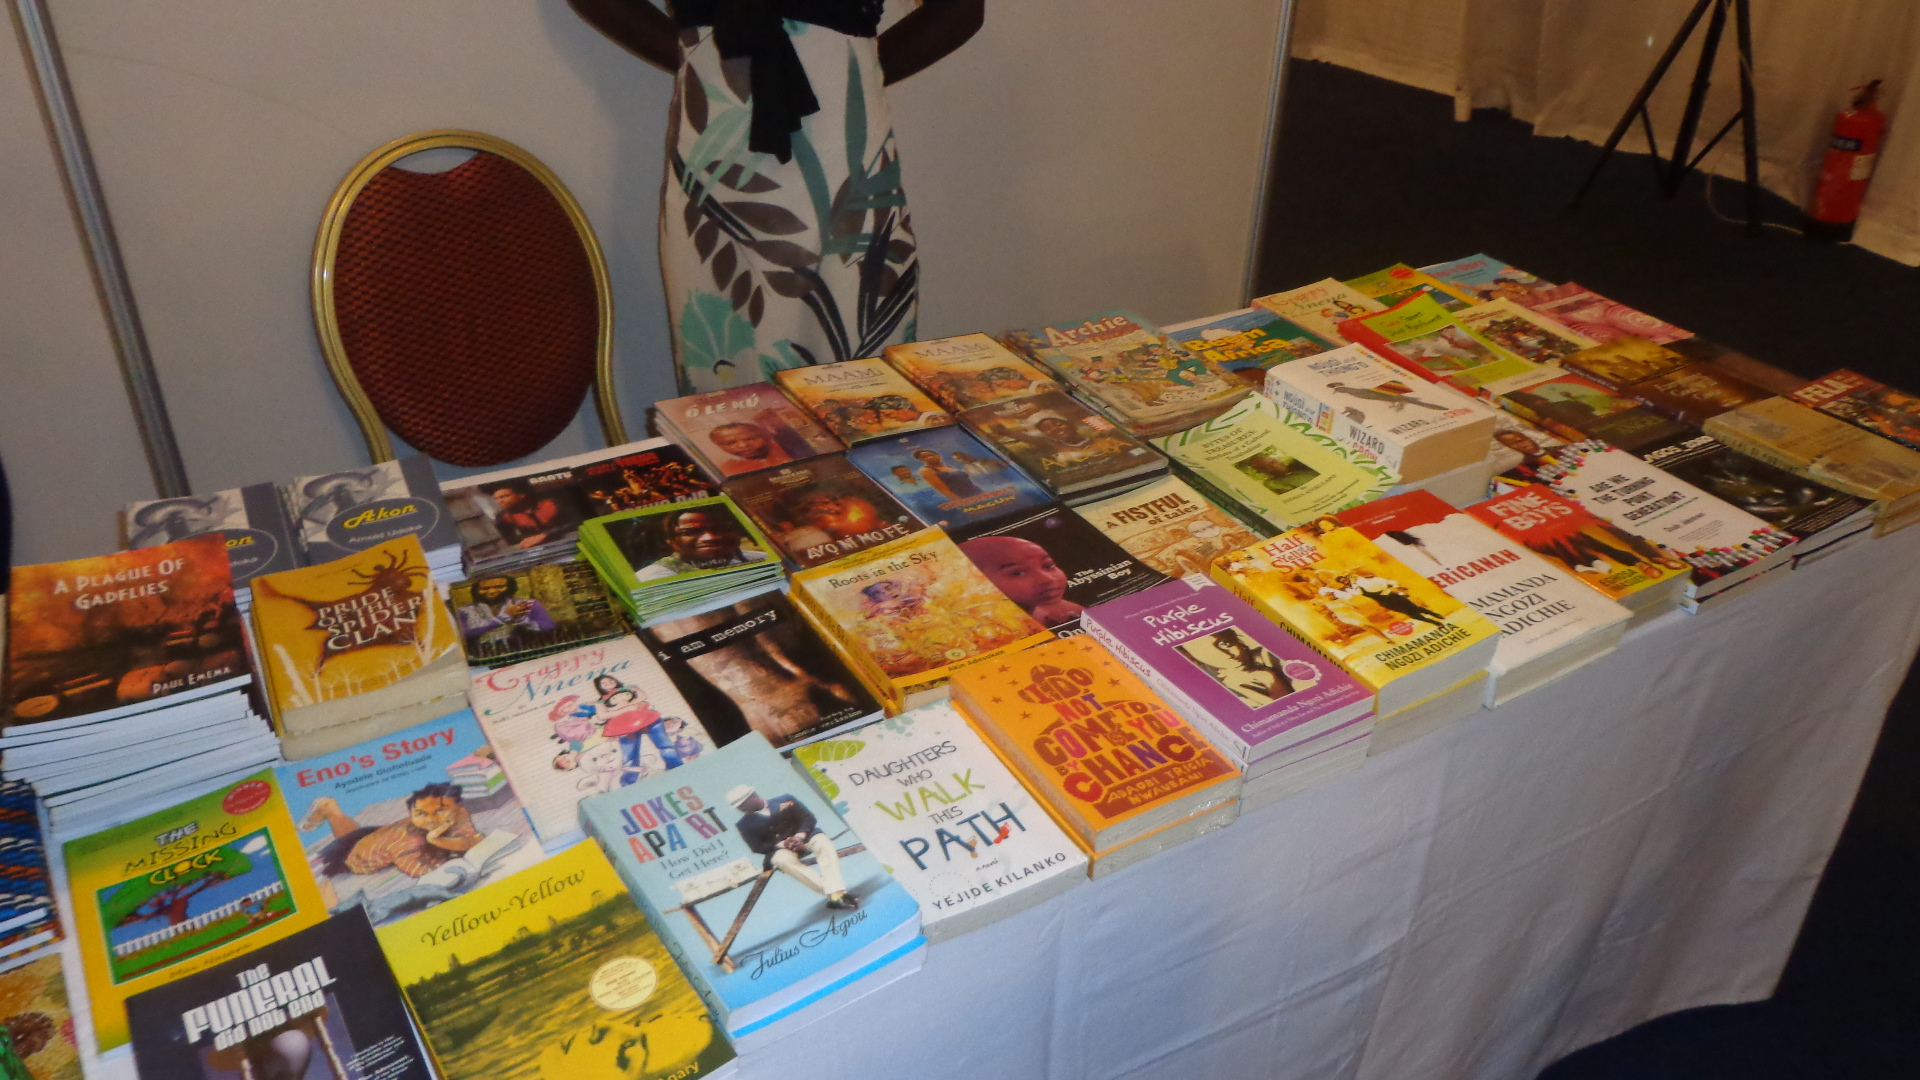 Books on display at the event.